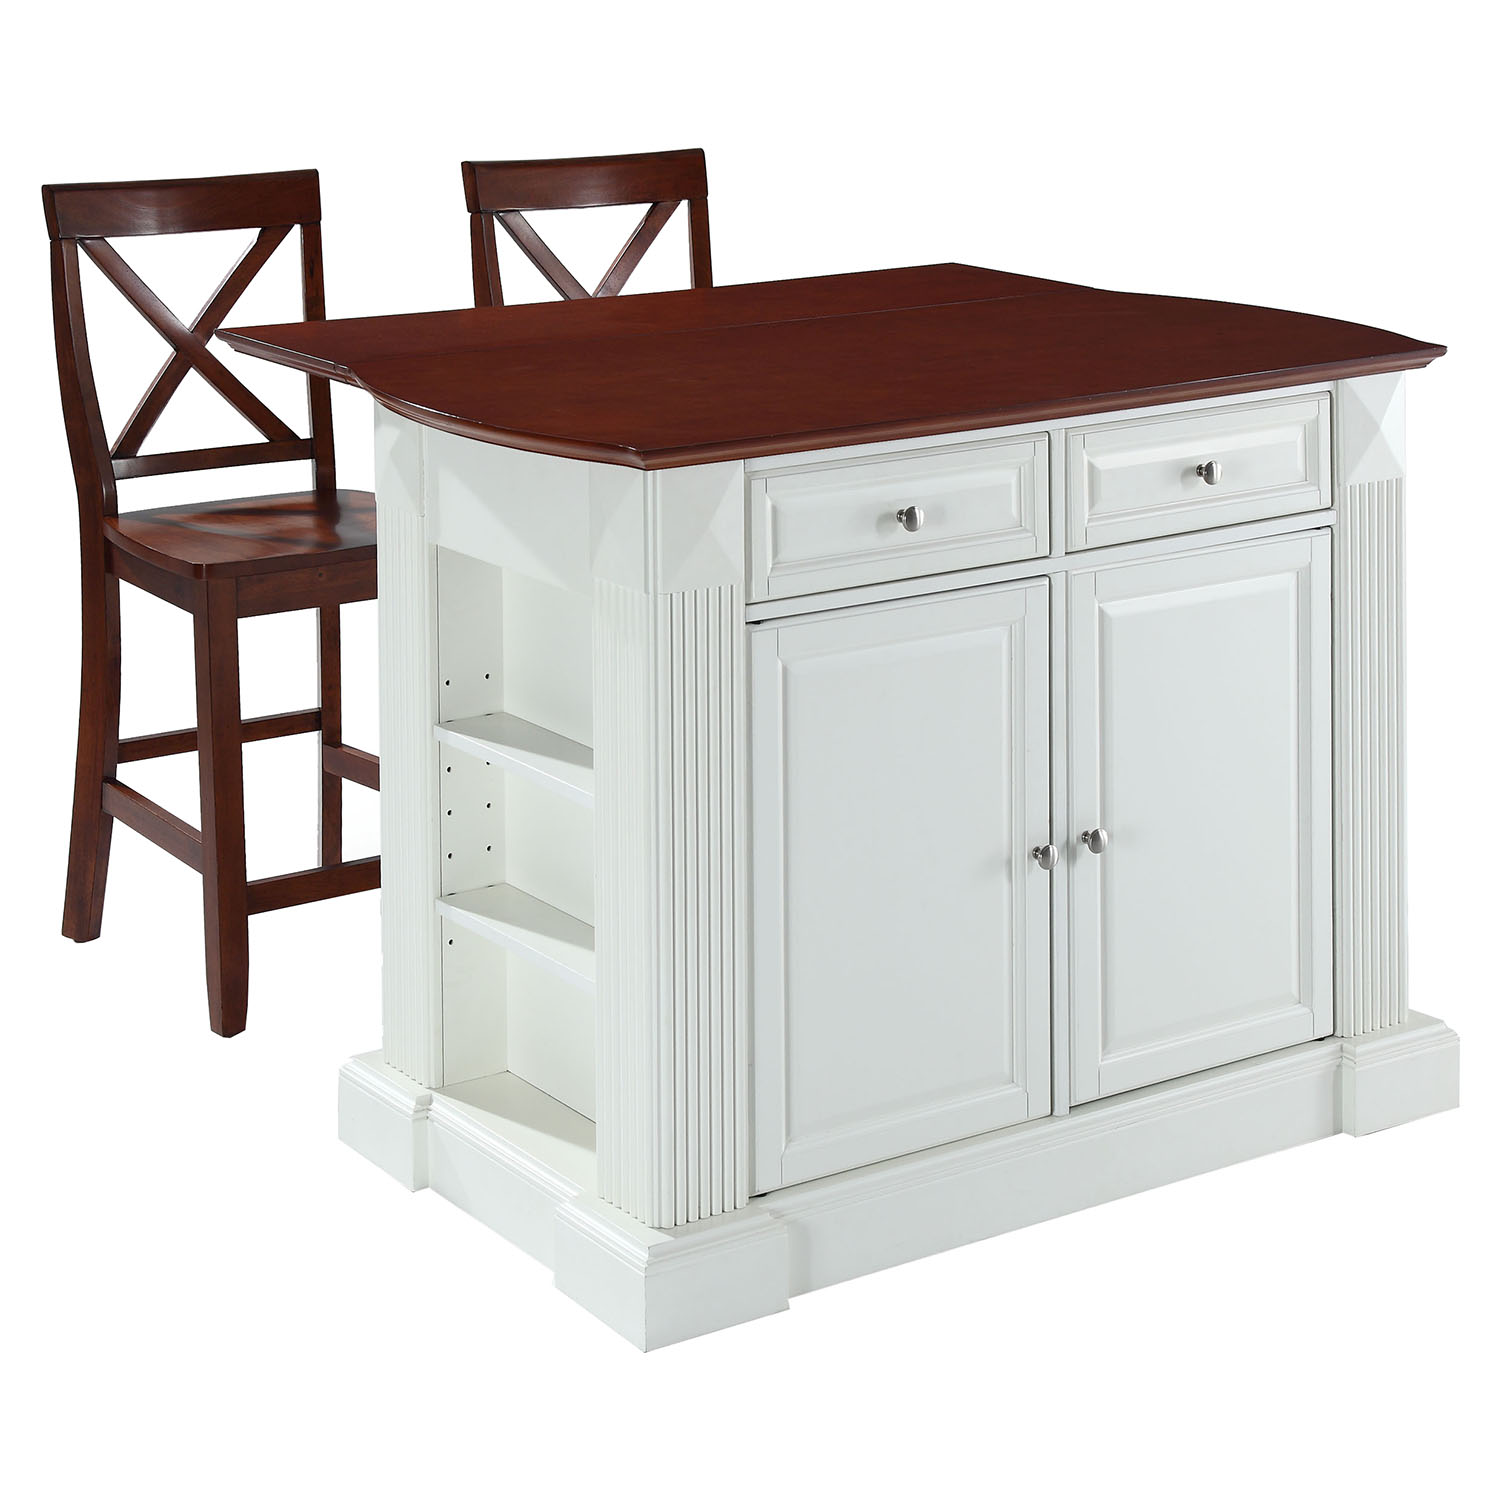 "Drop Leaf Kitchen Island in White with 24"" Cherry X-Back Stools - CROS-KF300073WH"